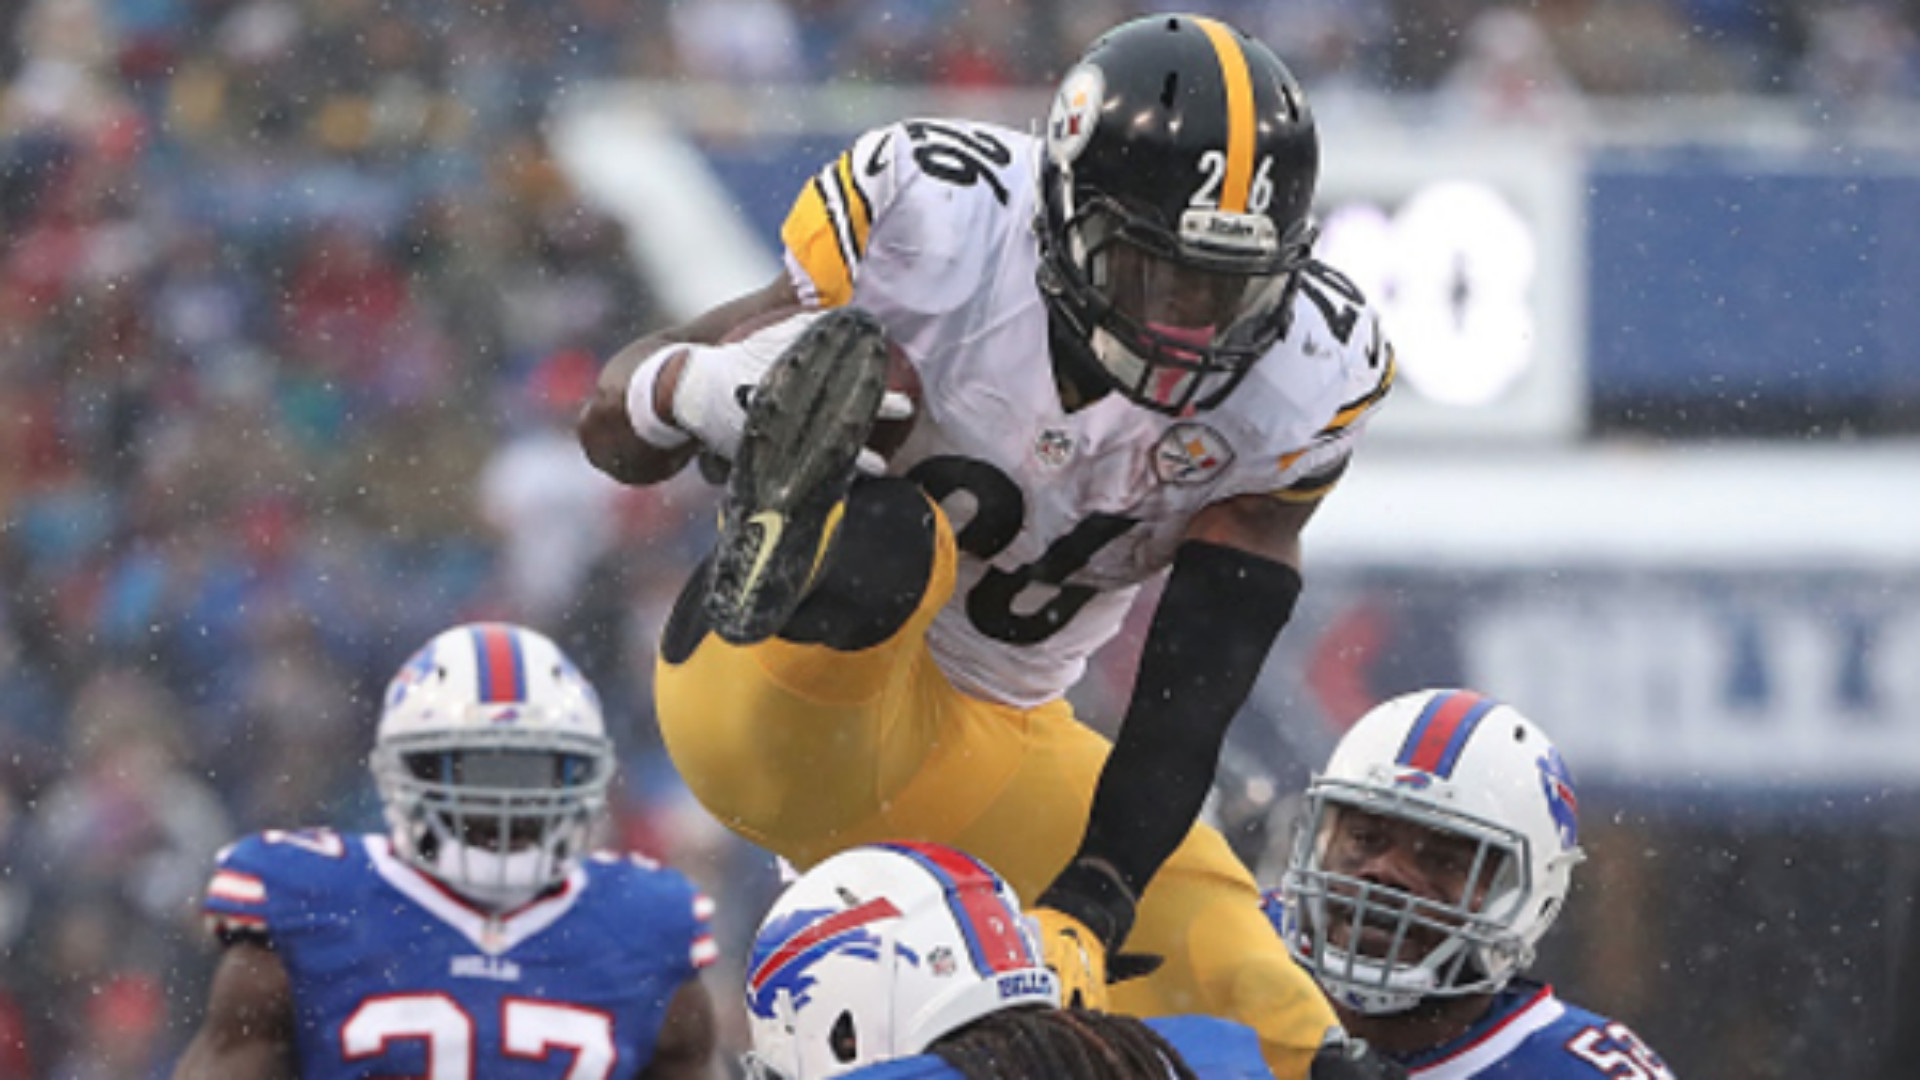 Taking you through a record-setting day for Le'Veon Bell | NFL | Sporting  News